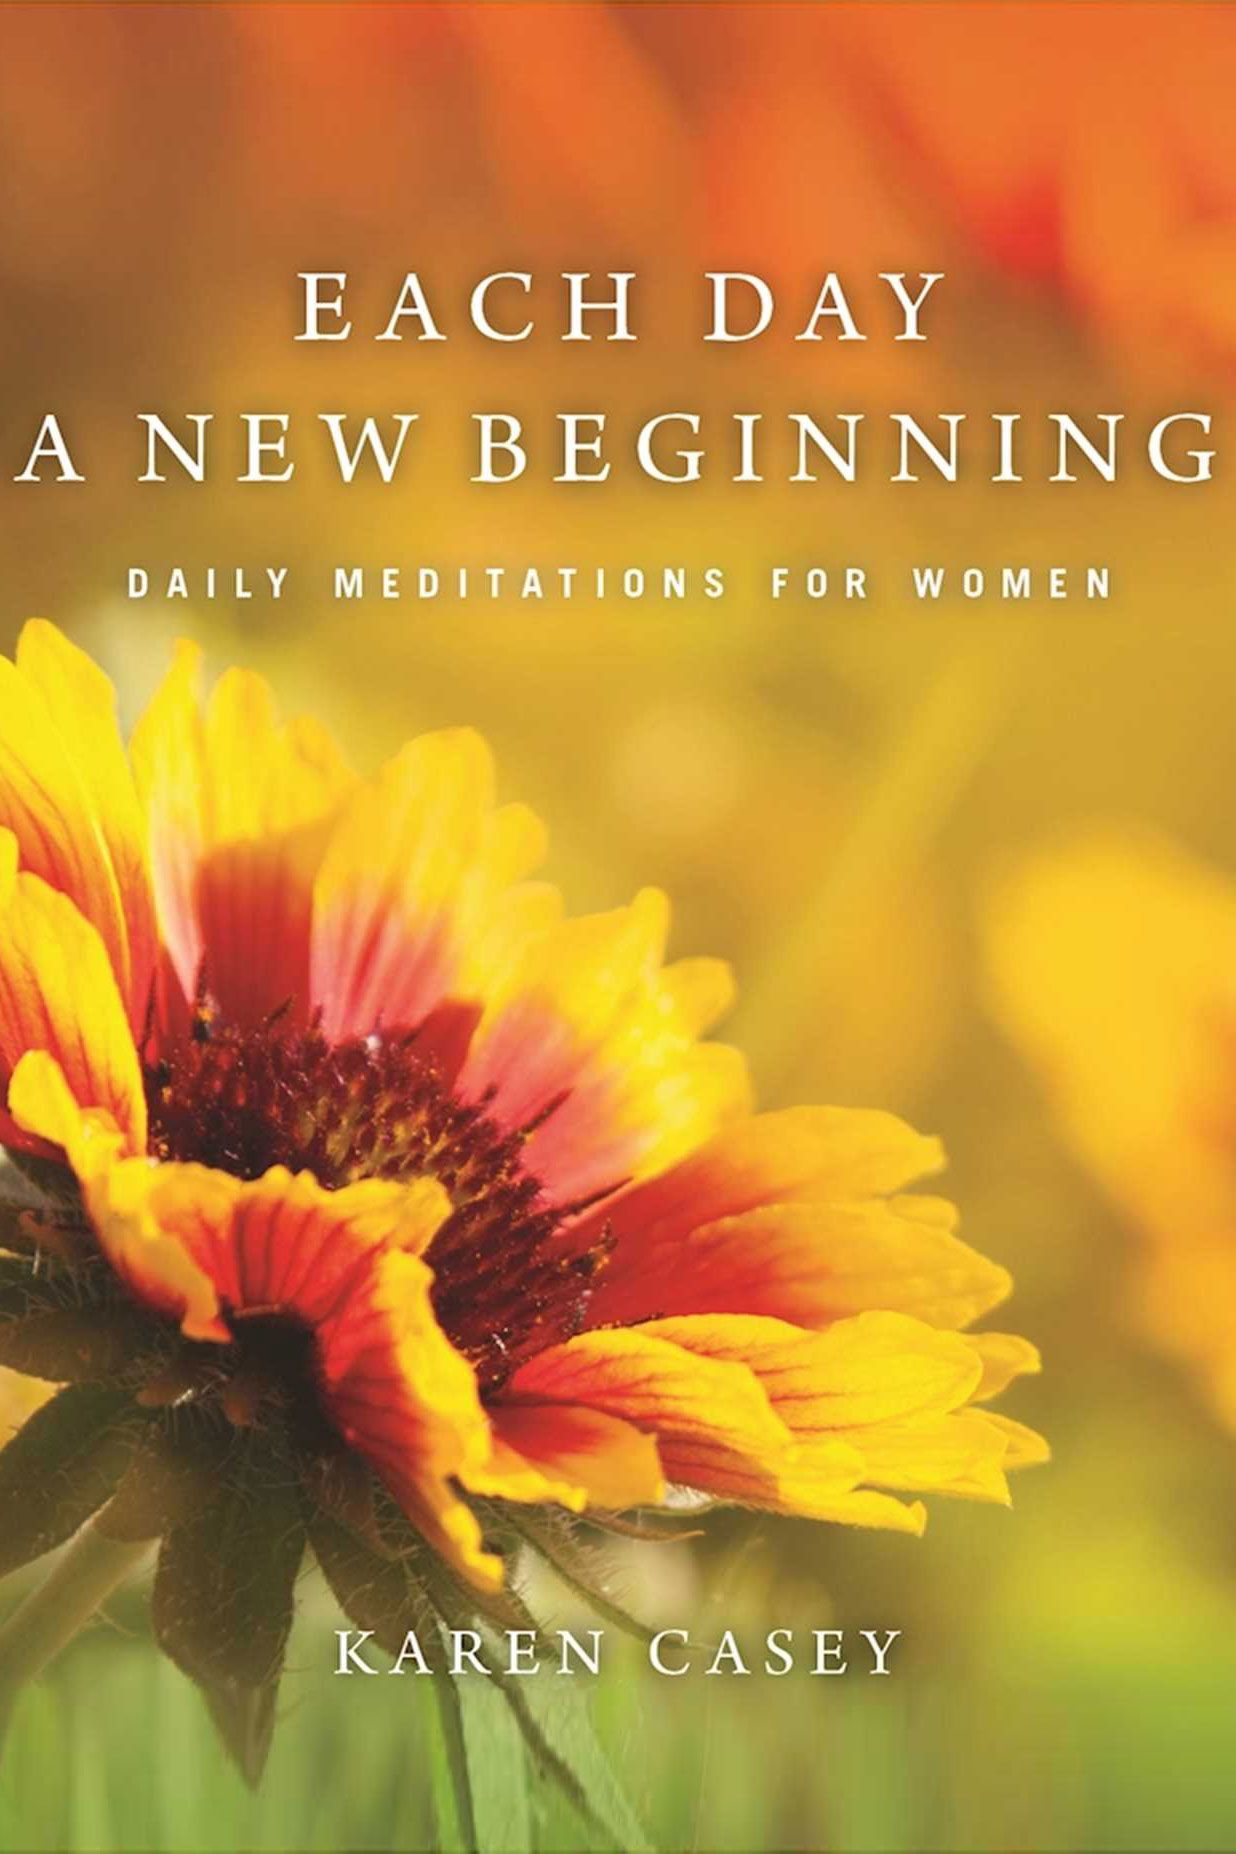 Best Inspirational Books for Women - Books Every Woman